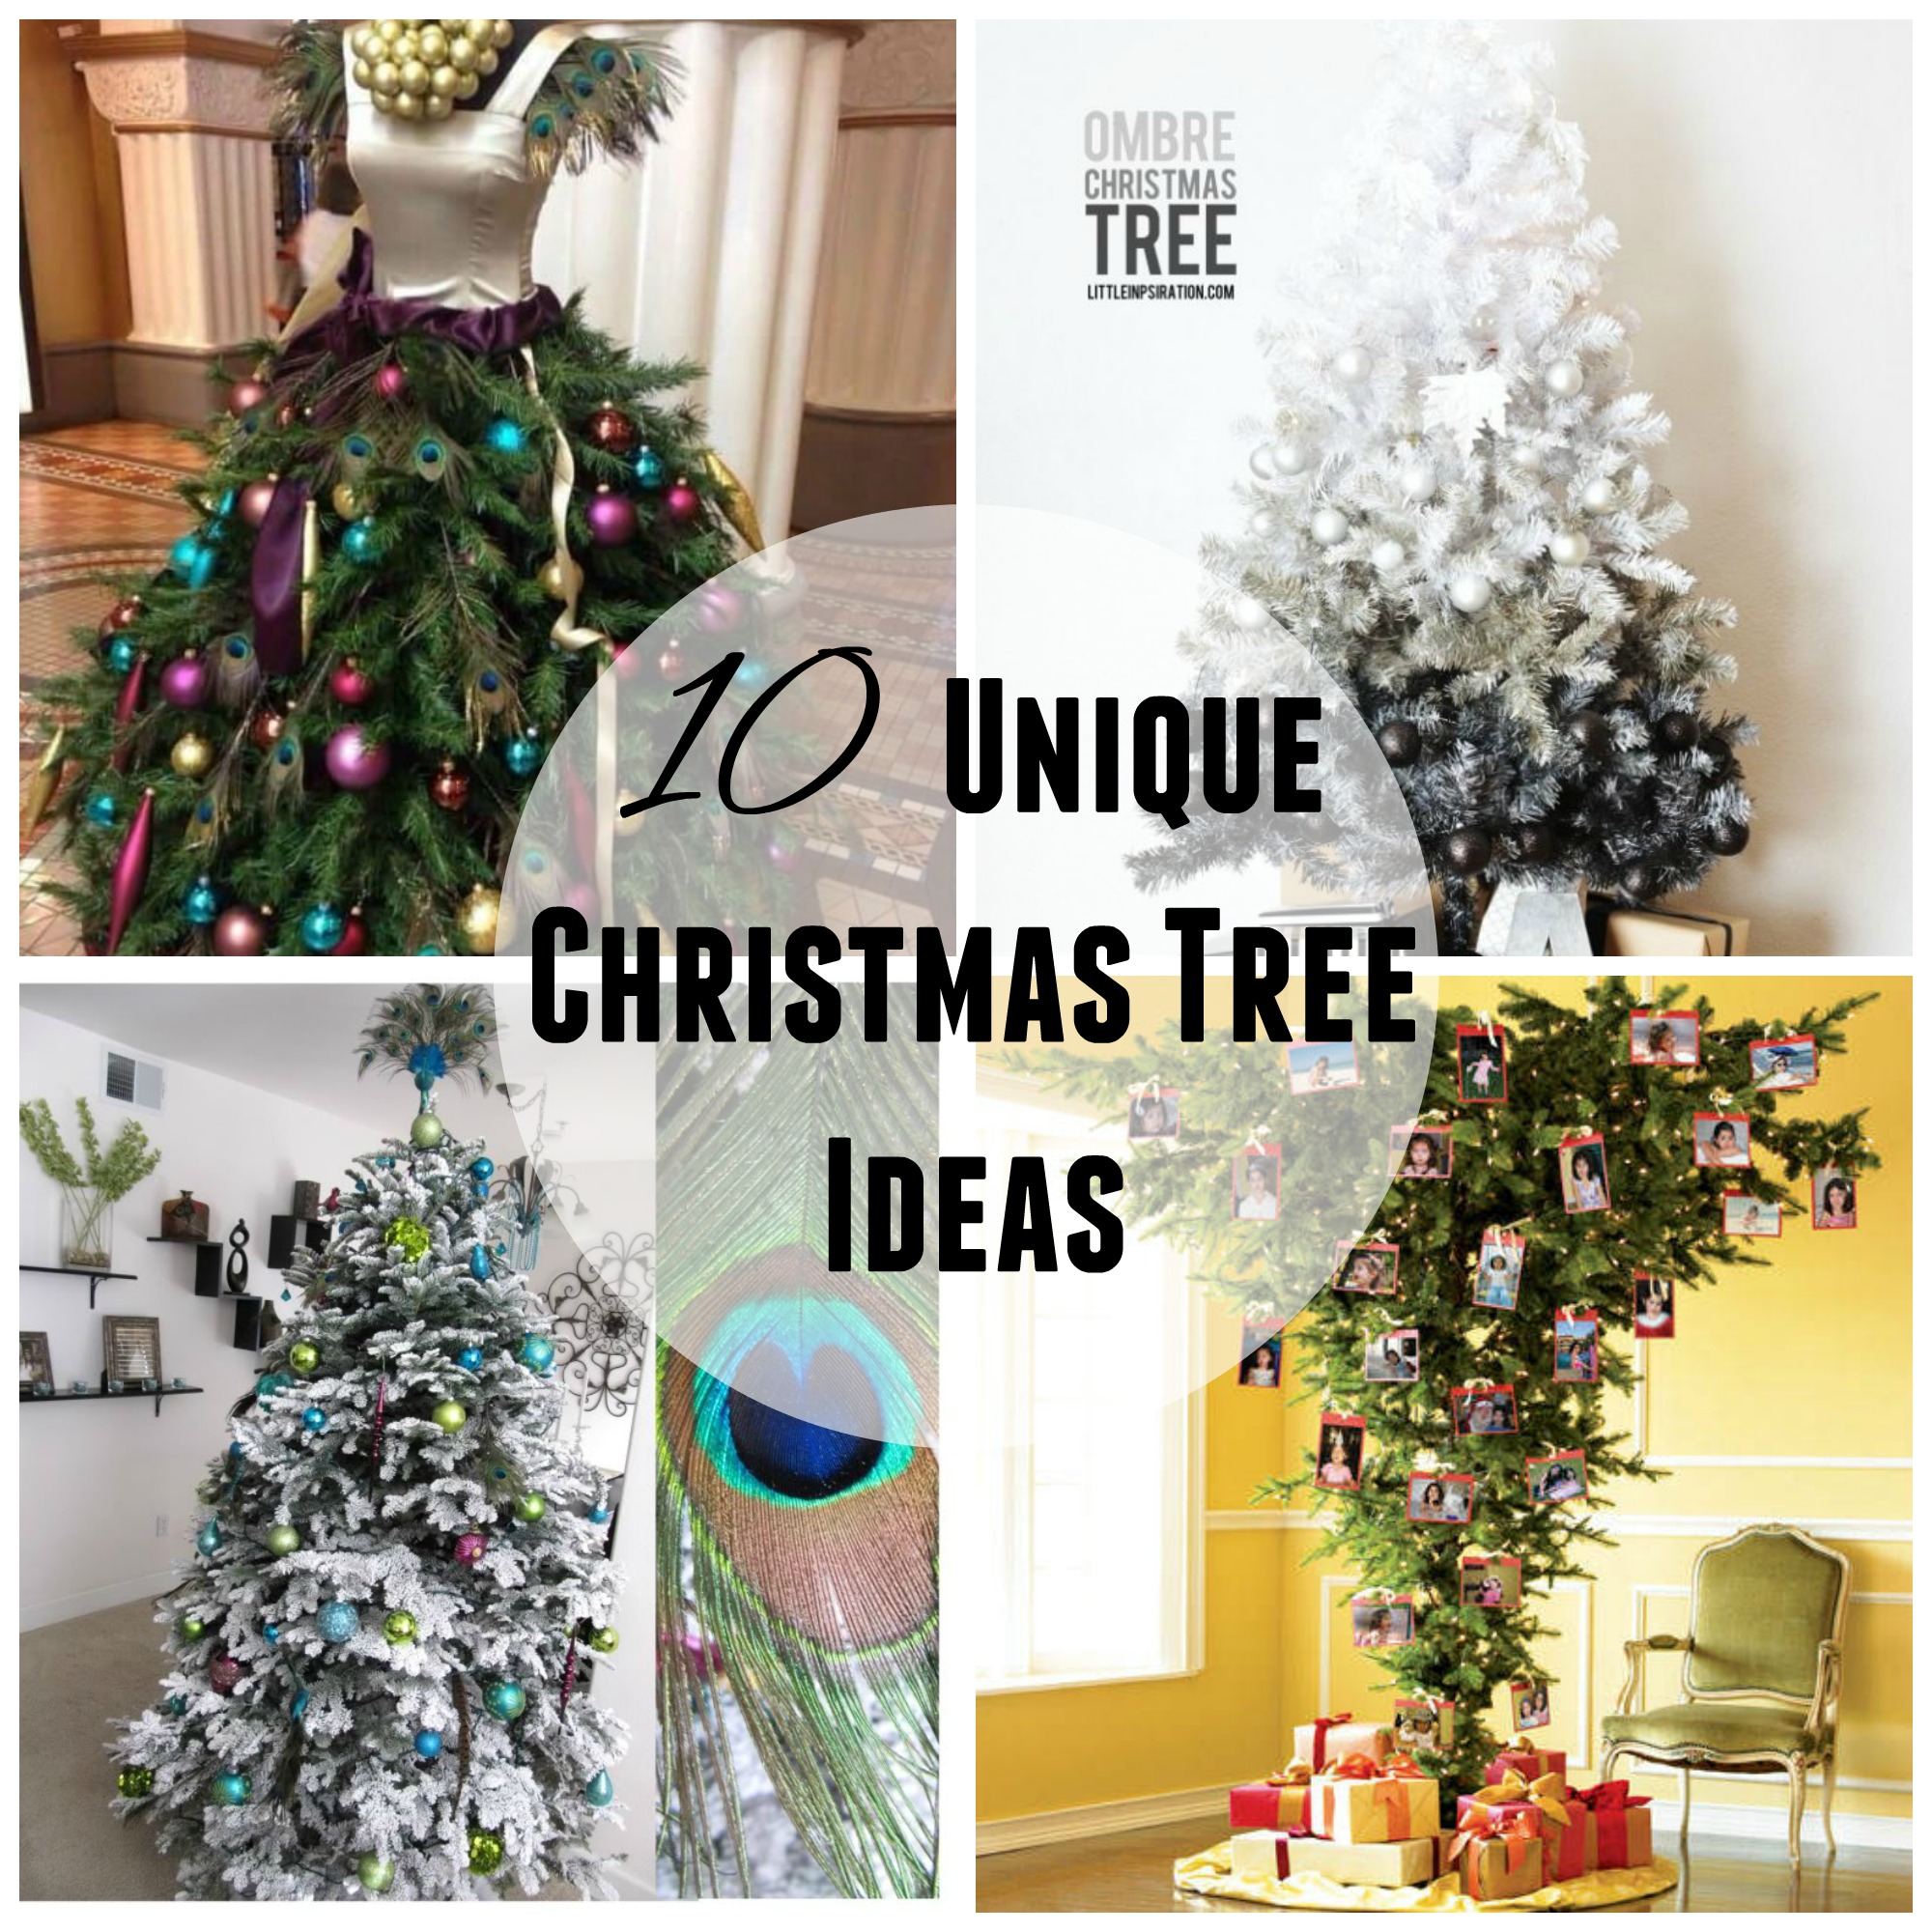 How To Decorate A Christmas Tree Video: 10 Unique Ways To Decorate A Christmas Tree